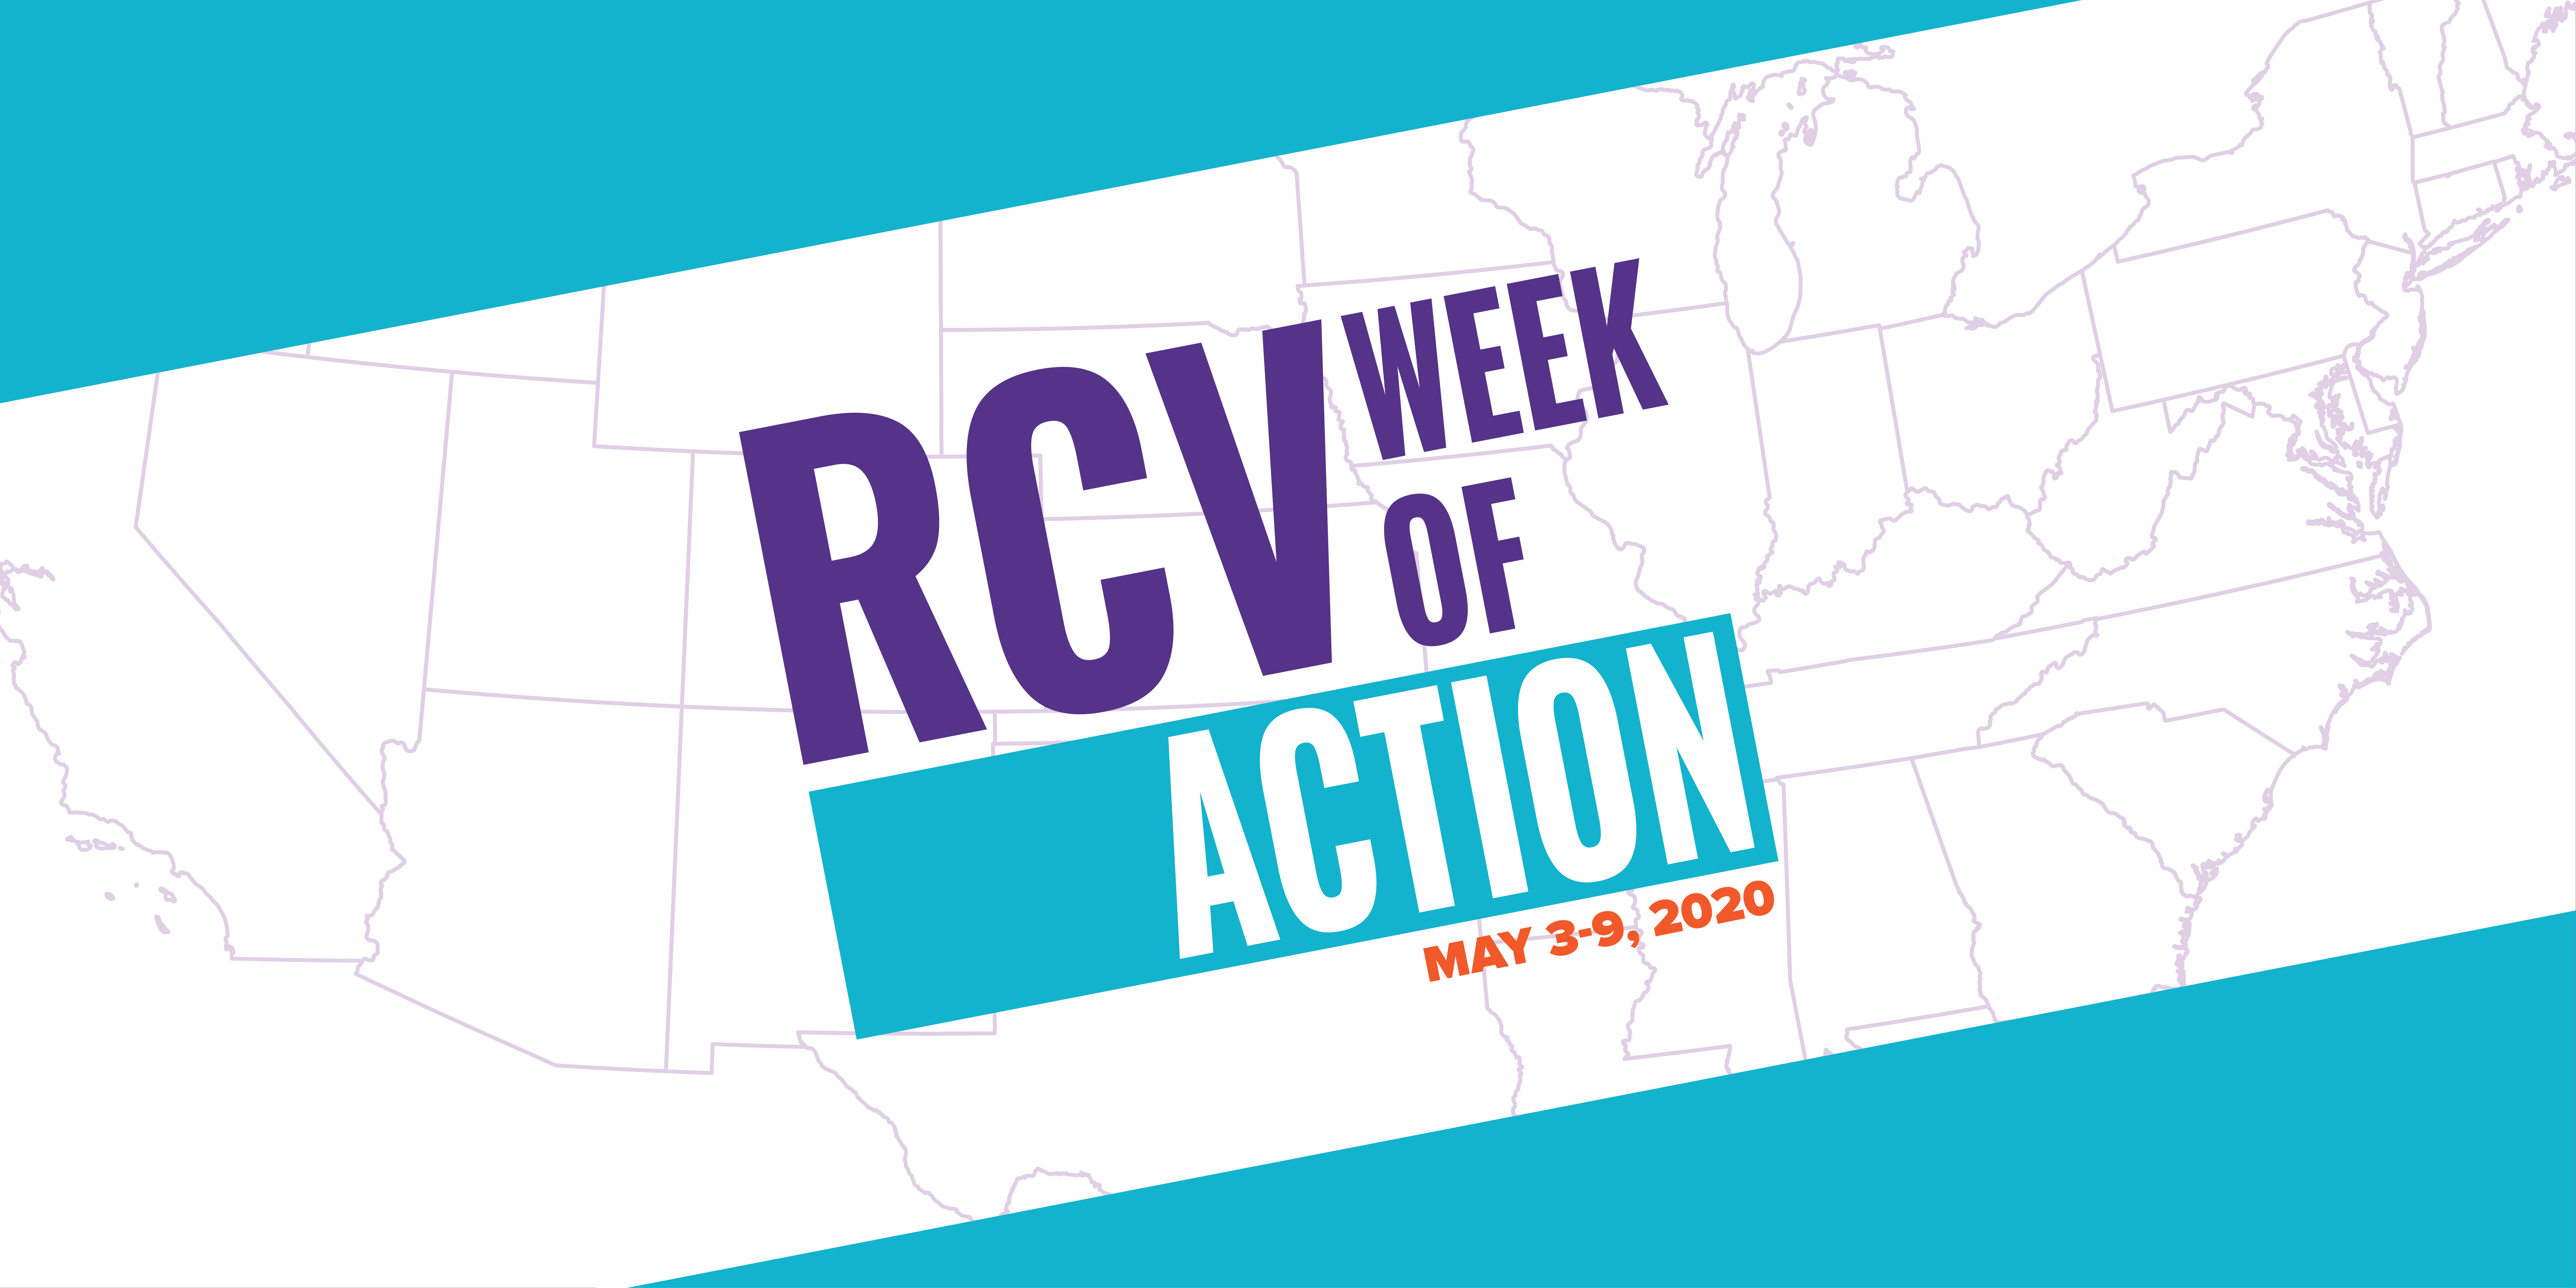 Missed FairVote's Week of Action? Here are the Highlights!